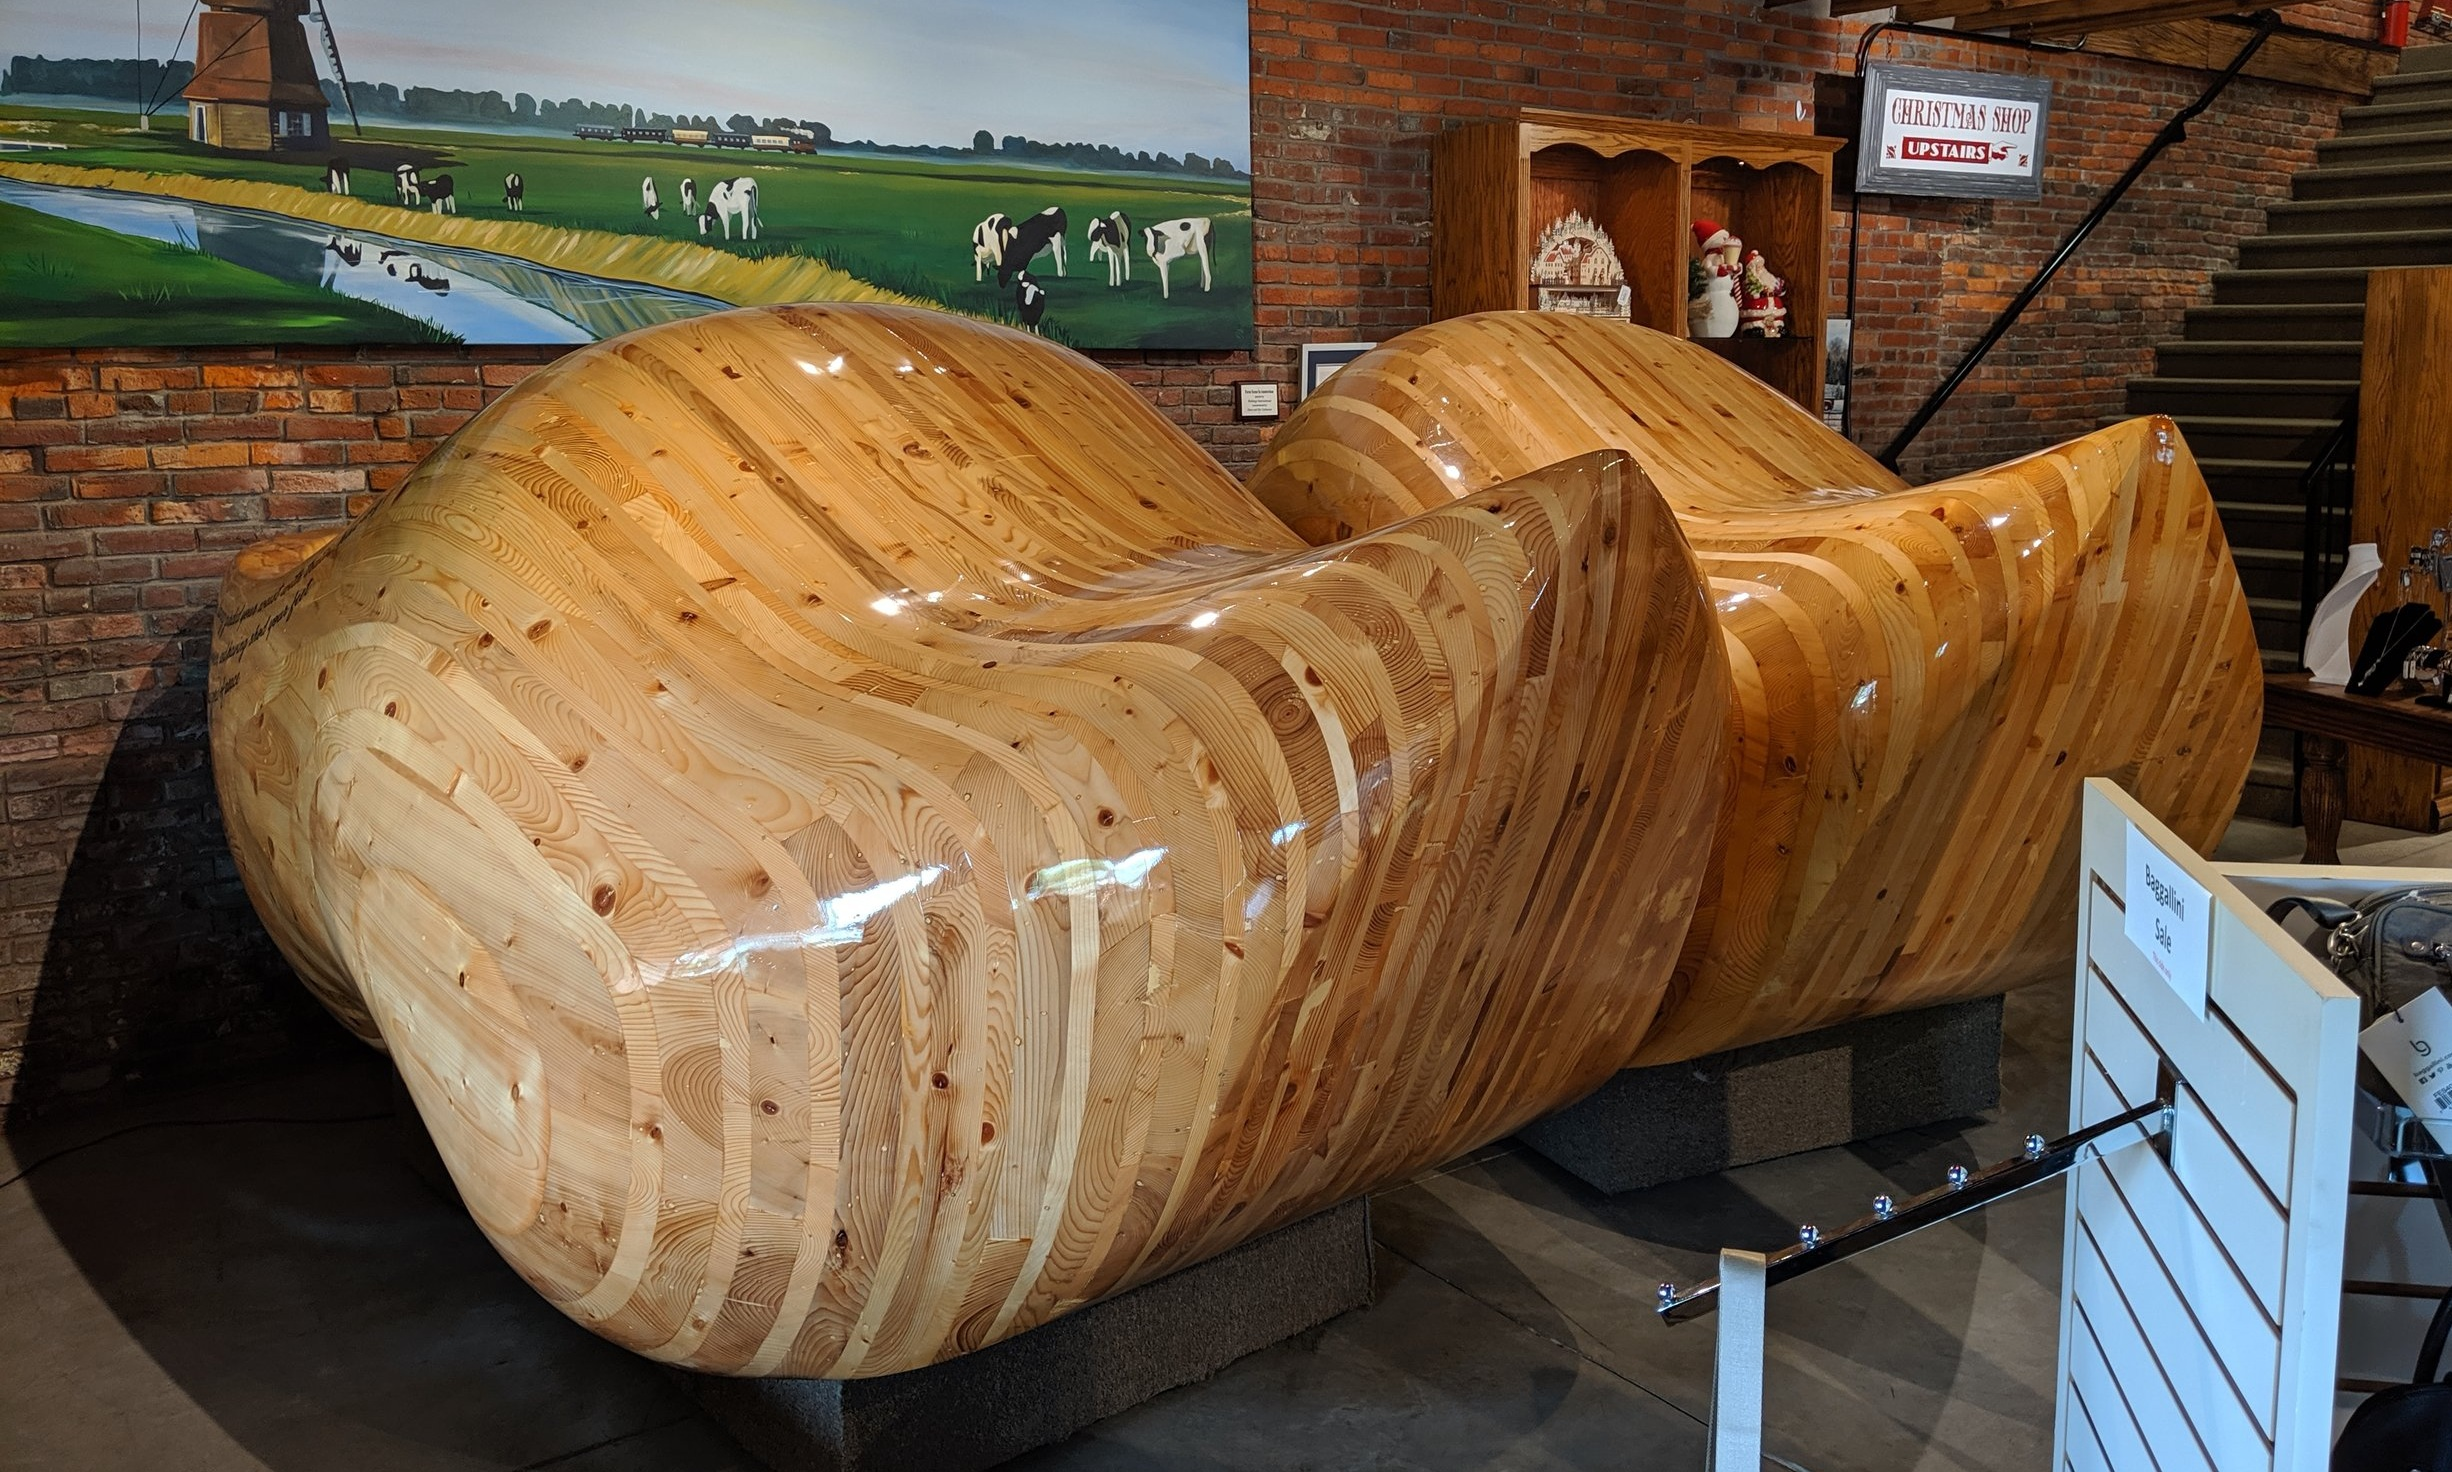 The world's largest (non-wearable) wooden shoes.